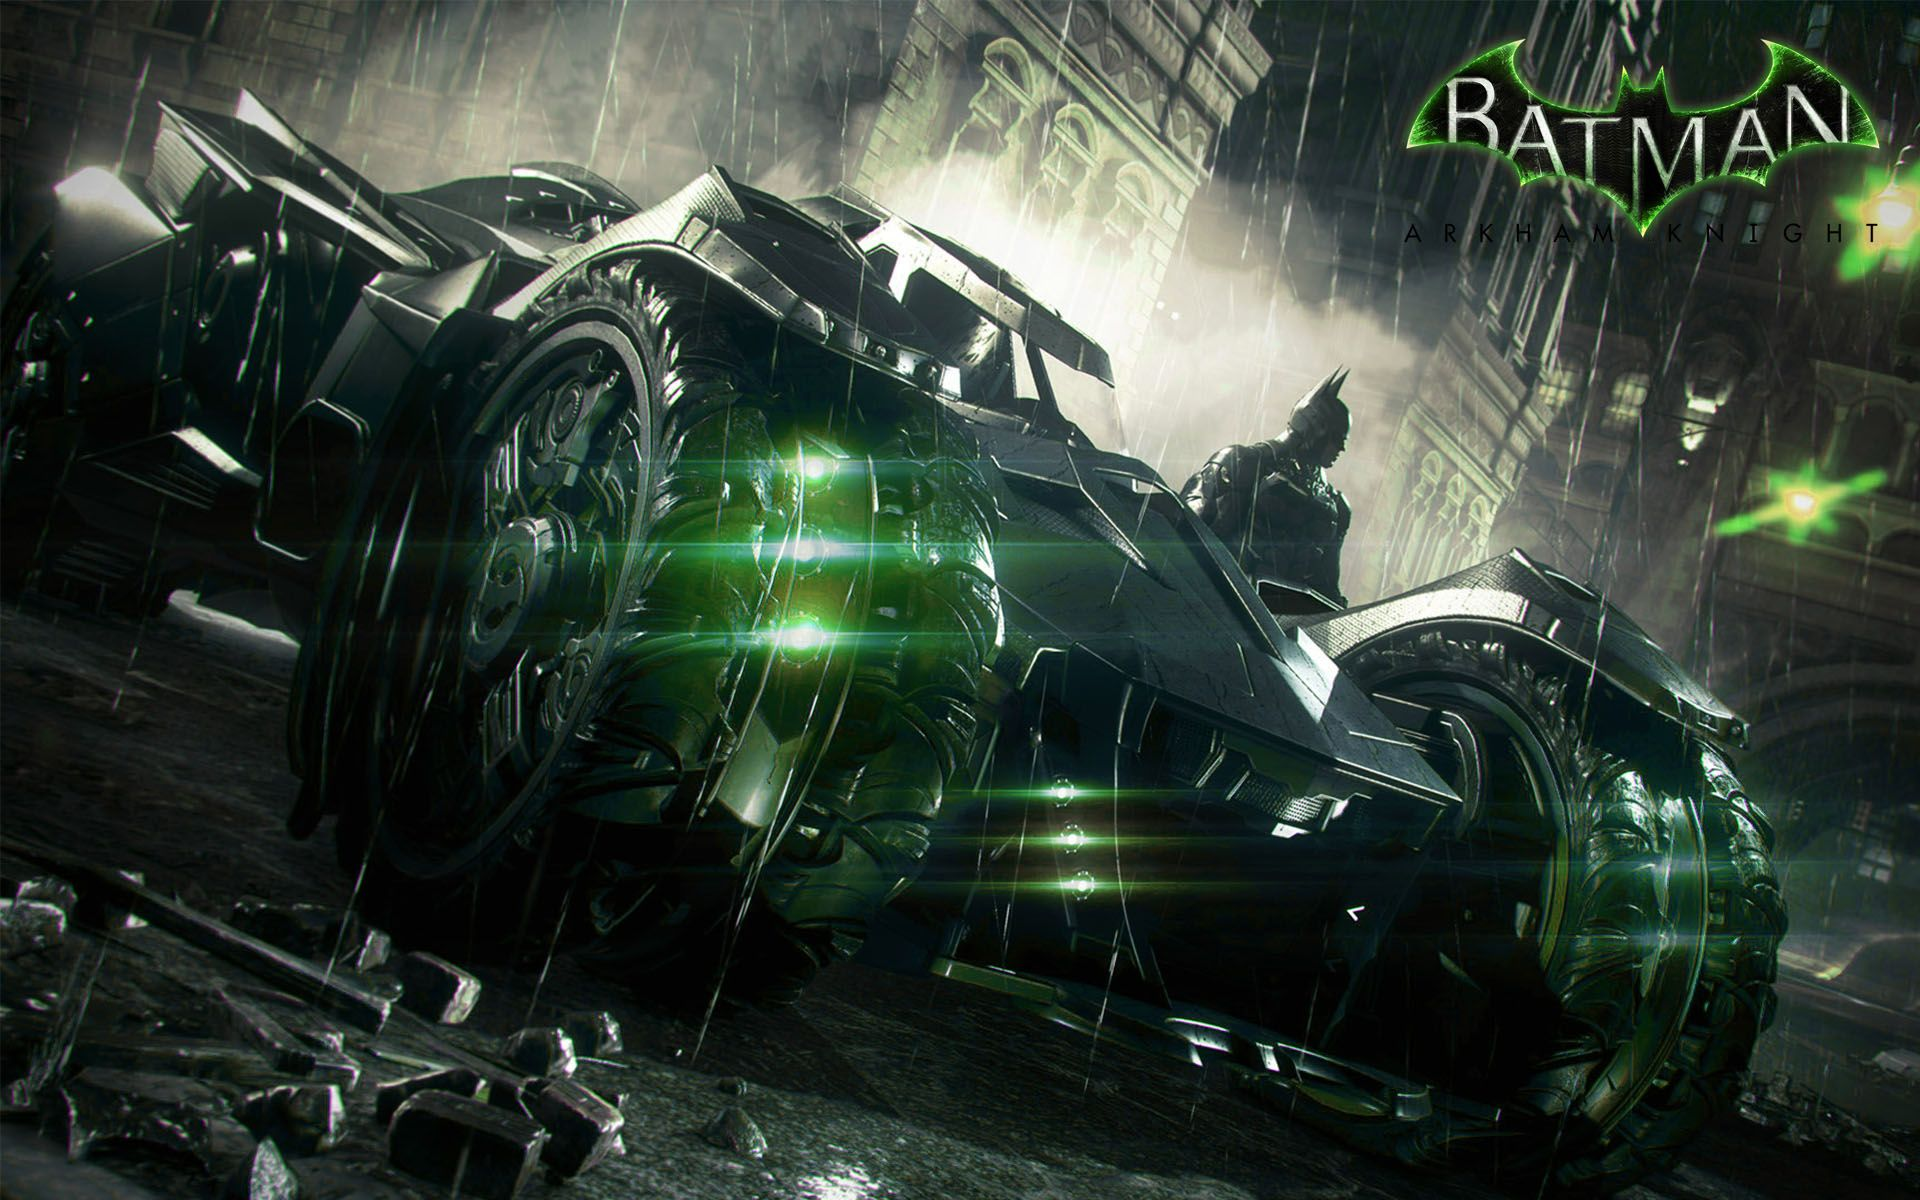 Batman Arkham Knight Batmobile Wallpaper | Games ...